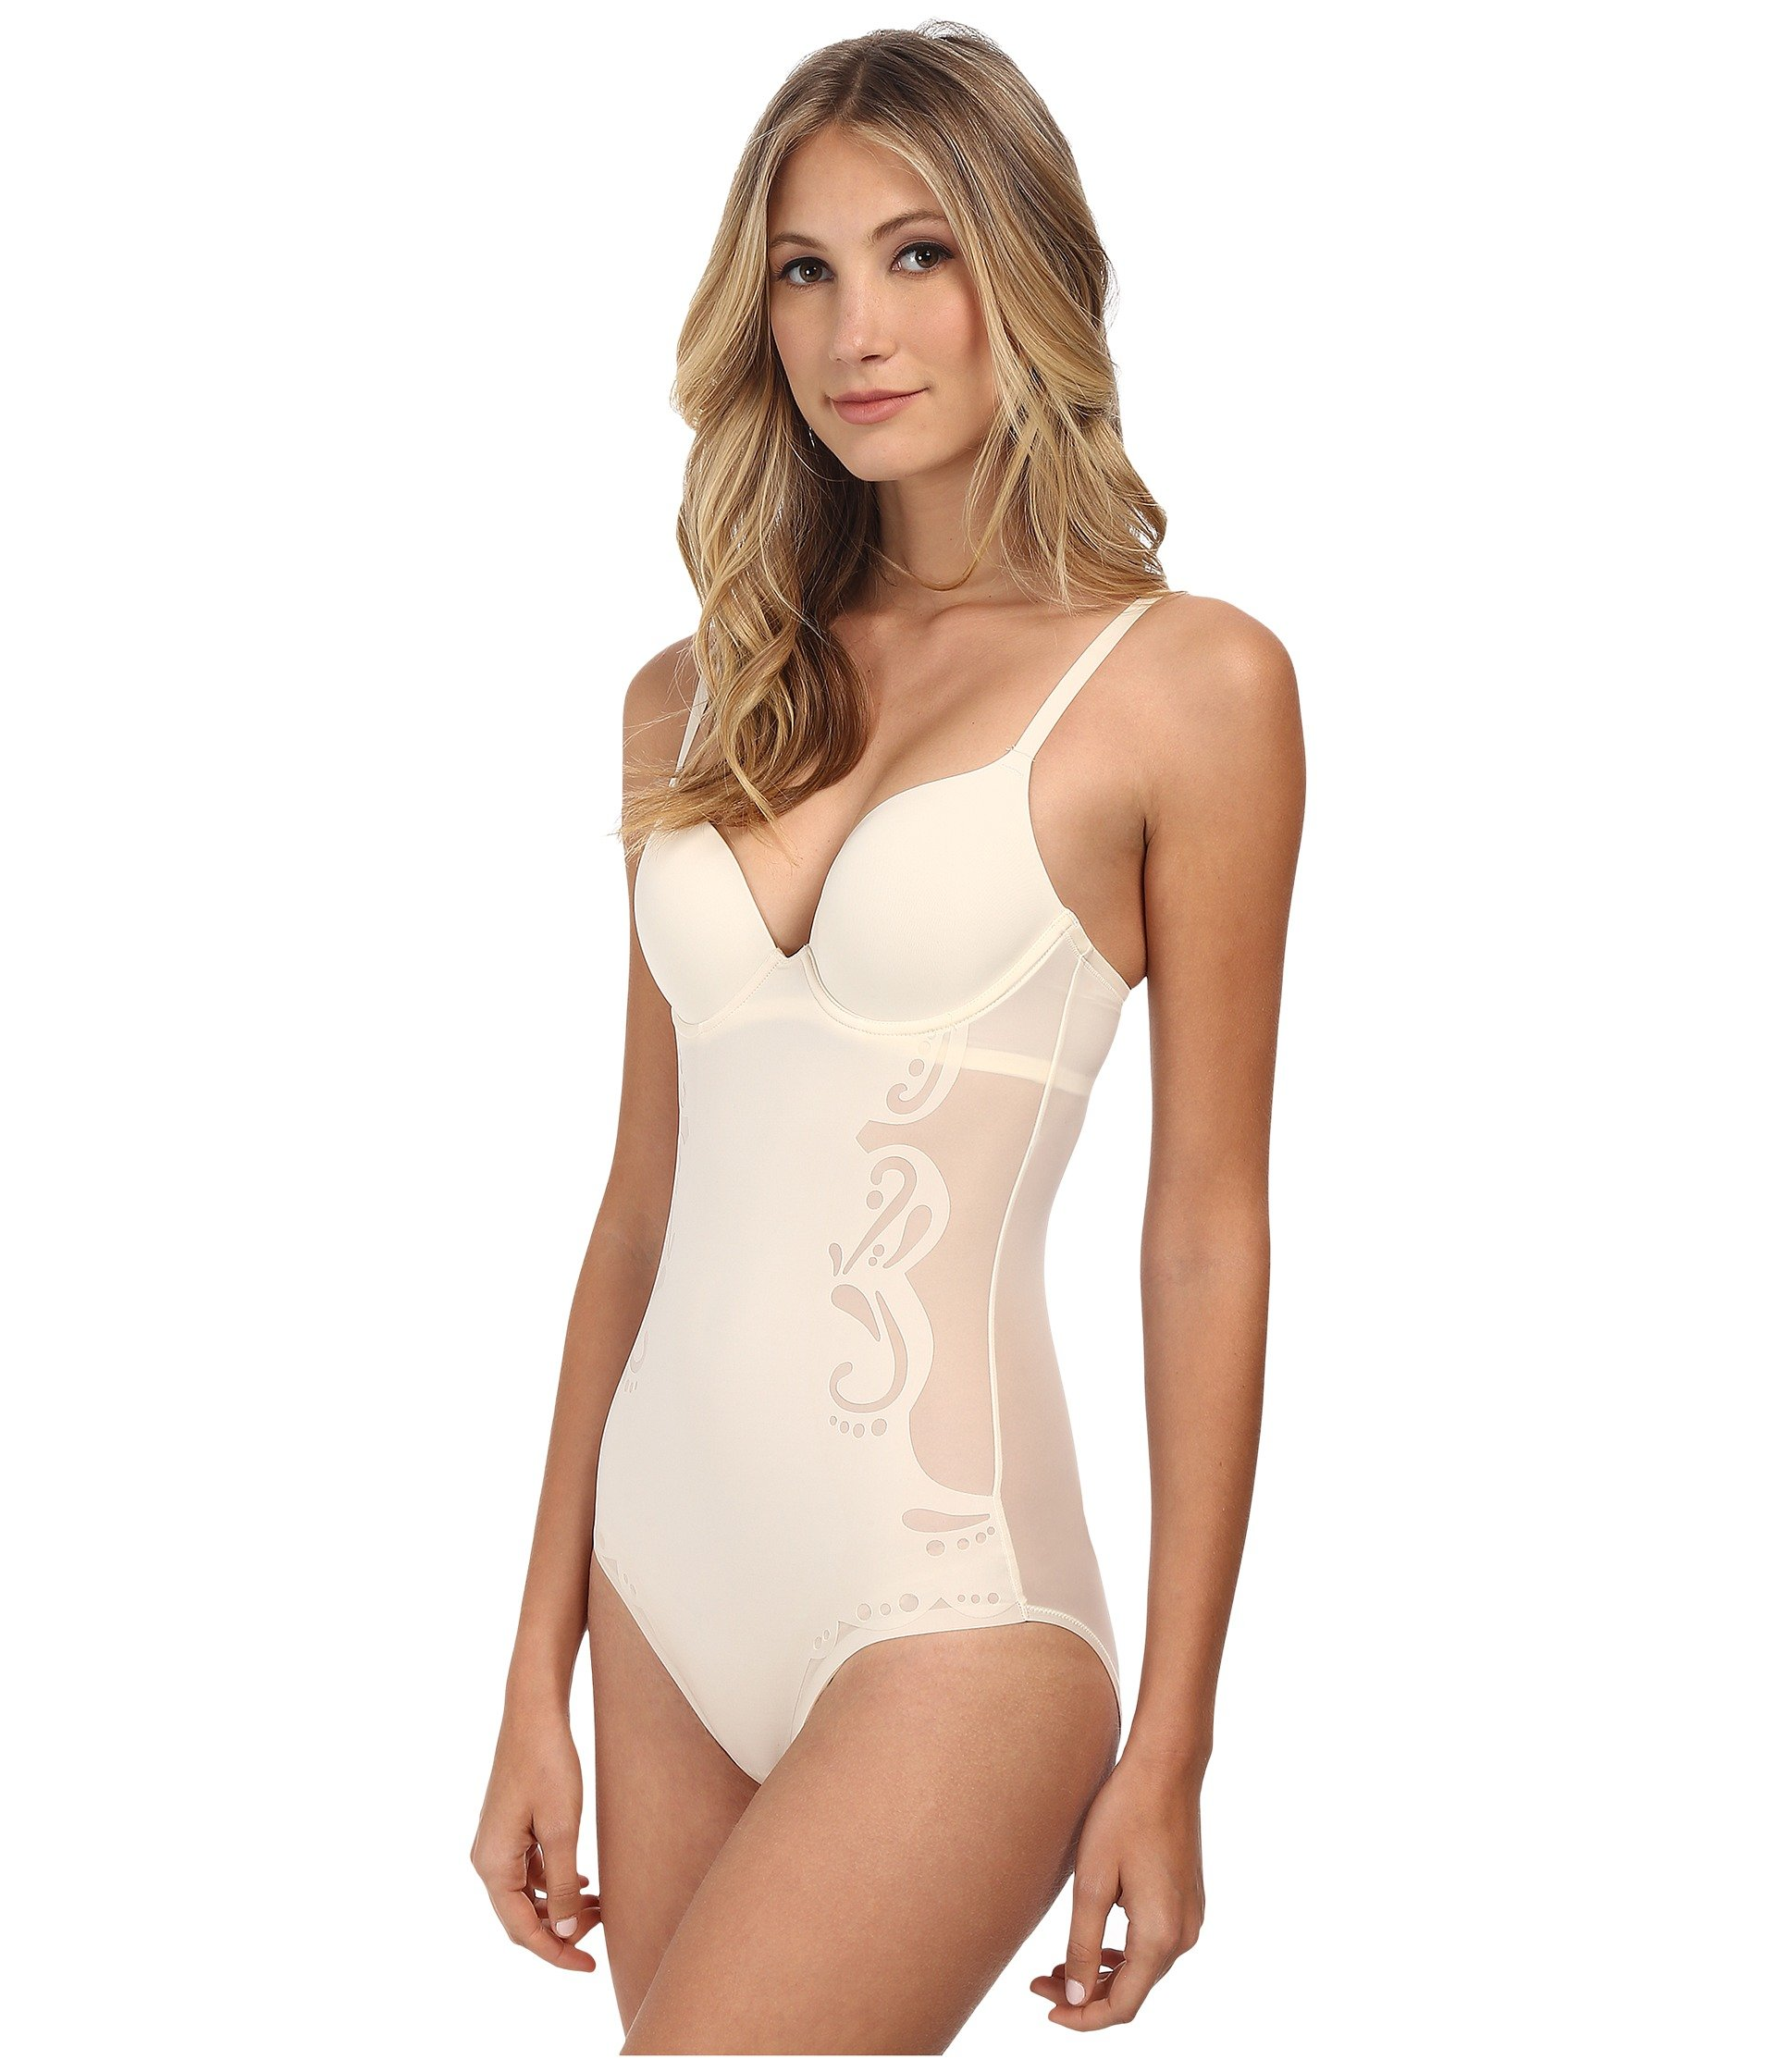 Spanx Womens Haute Contour Deco Sweetheart Panty Body SS0515 Pearlized White Body Shaper 36B